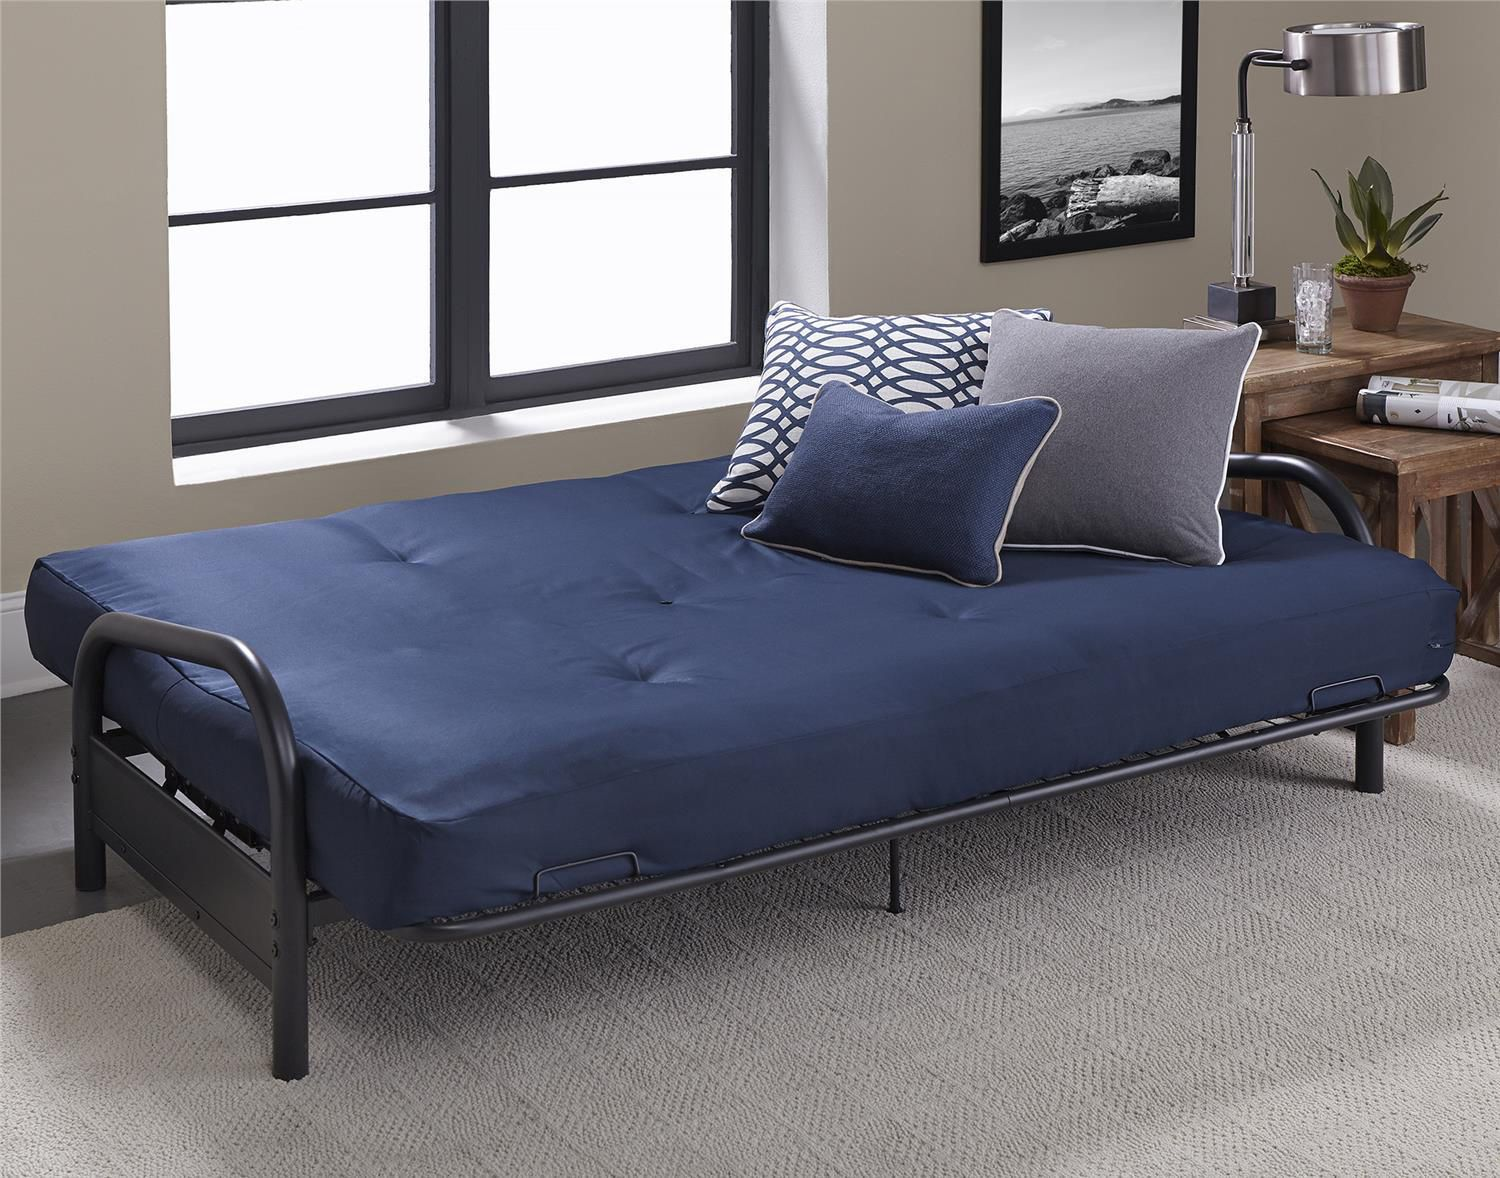 futons cheap fence amazing futon ikea mattress guide roof mattresses buying